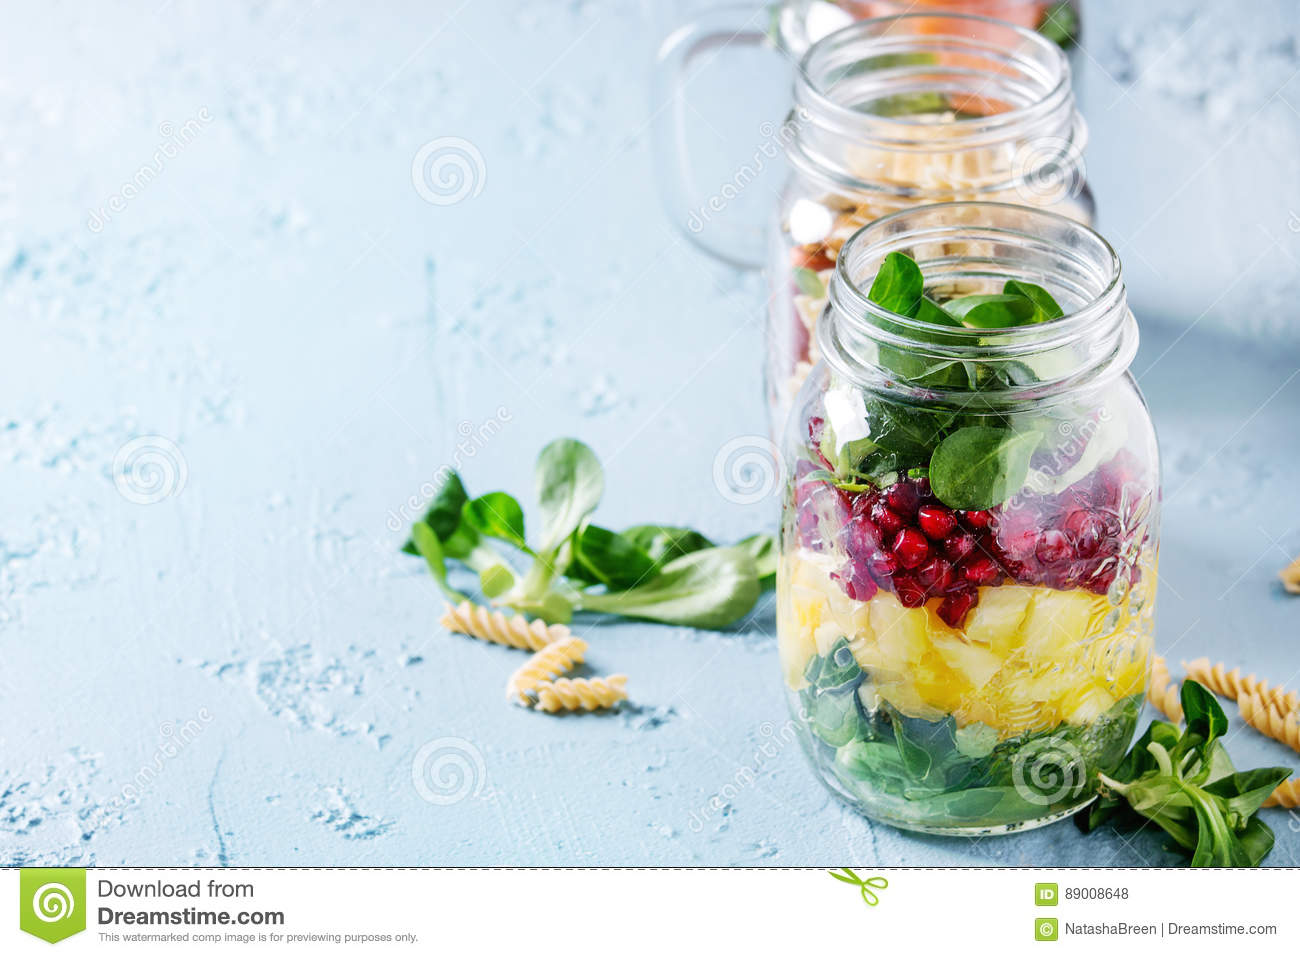 Fruit Salad Mango Pomegranate Greens Vegetables Wholegrain Pasta Carrots And Cauliflower Salmon Standing Over Blue Texture Background Food To Go